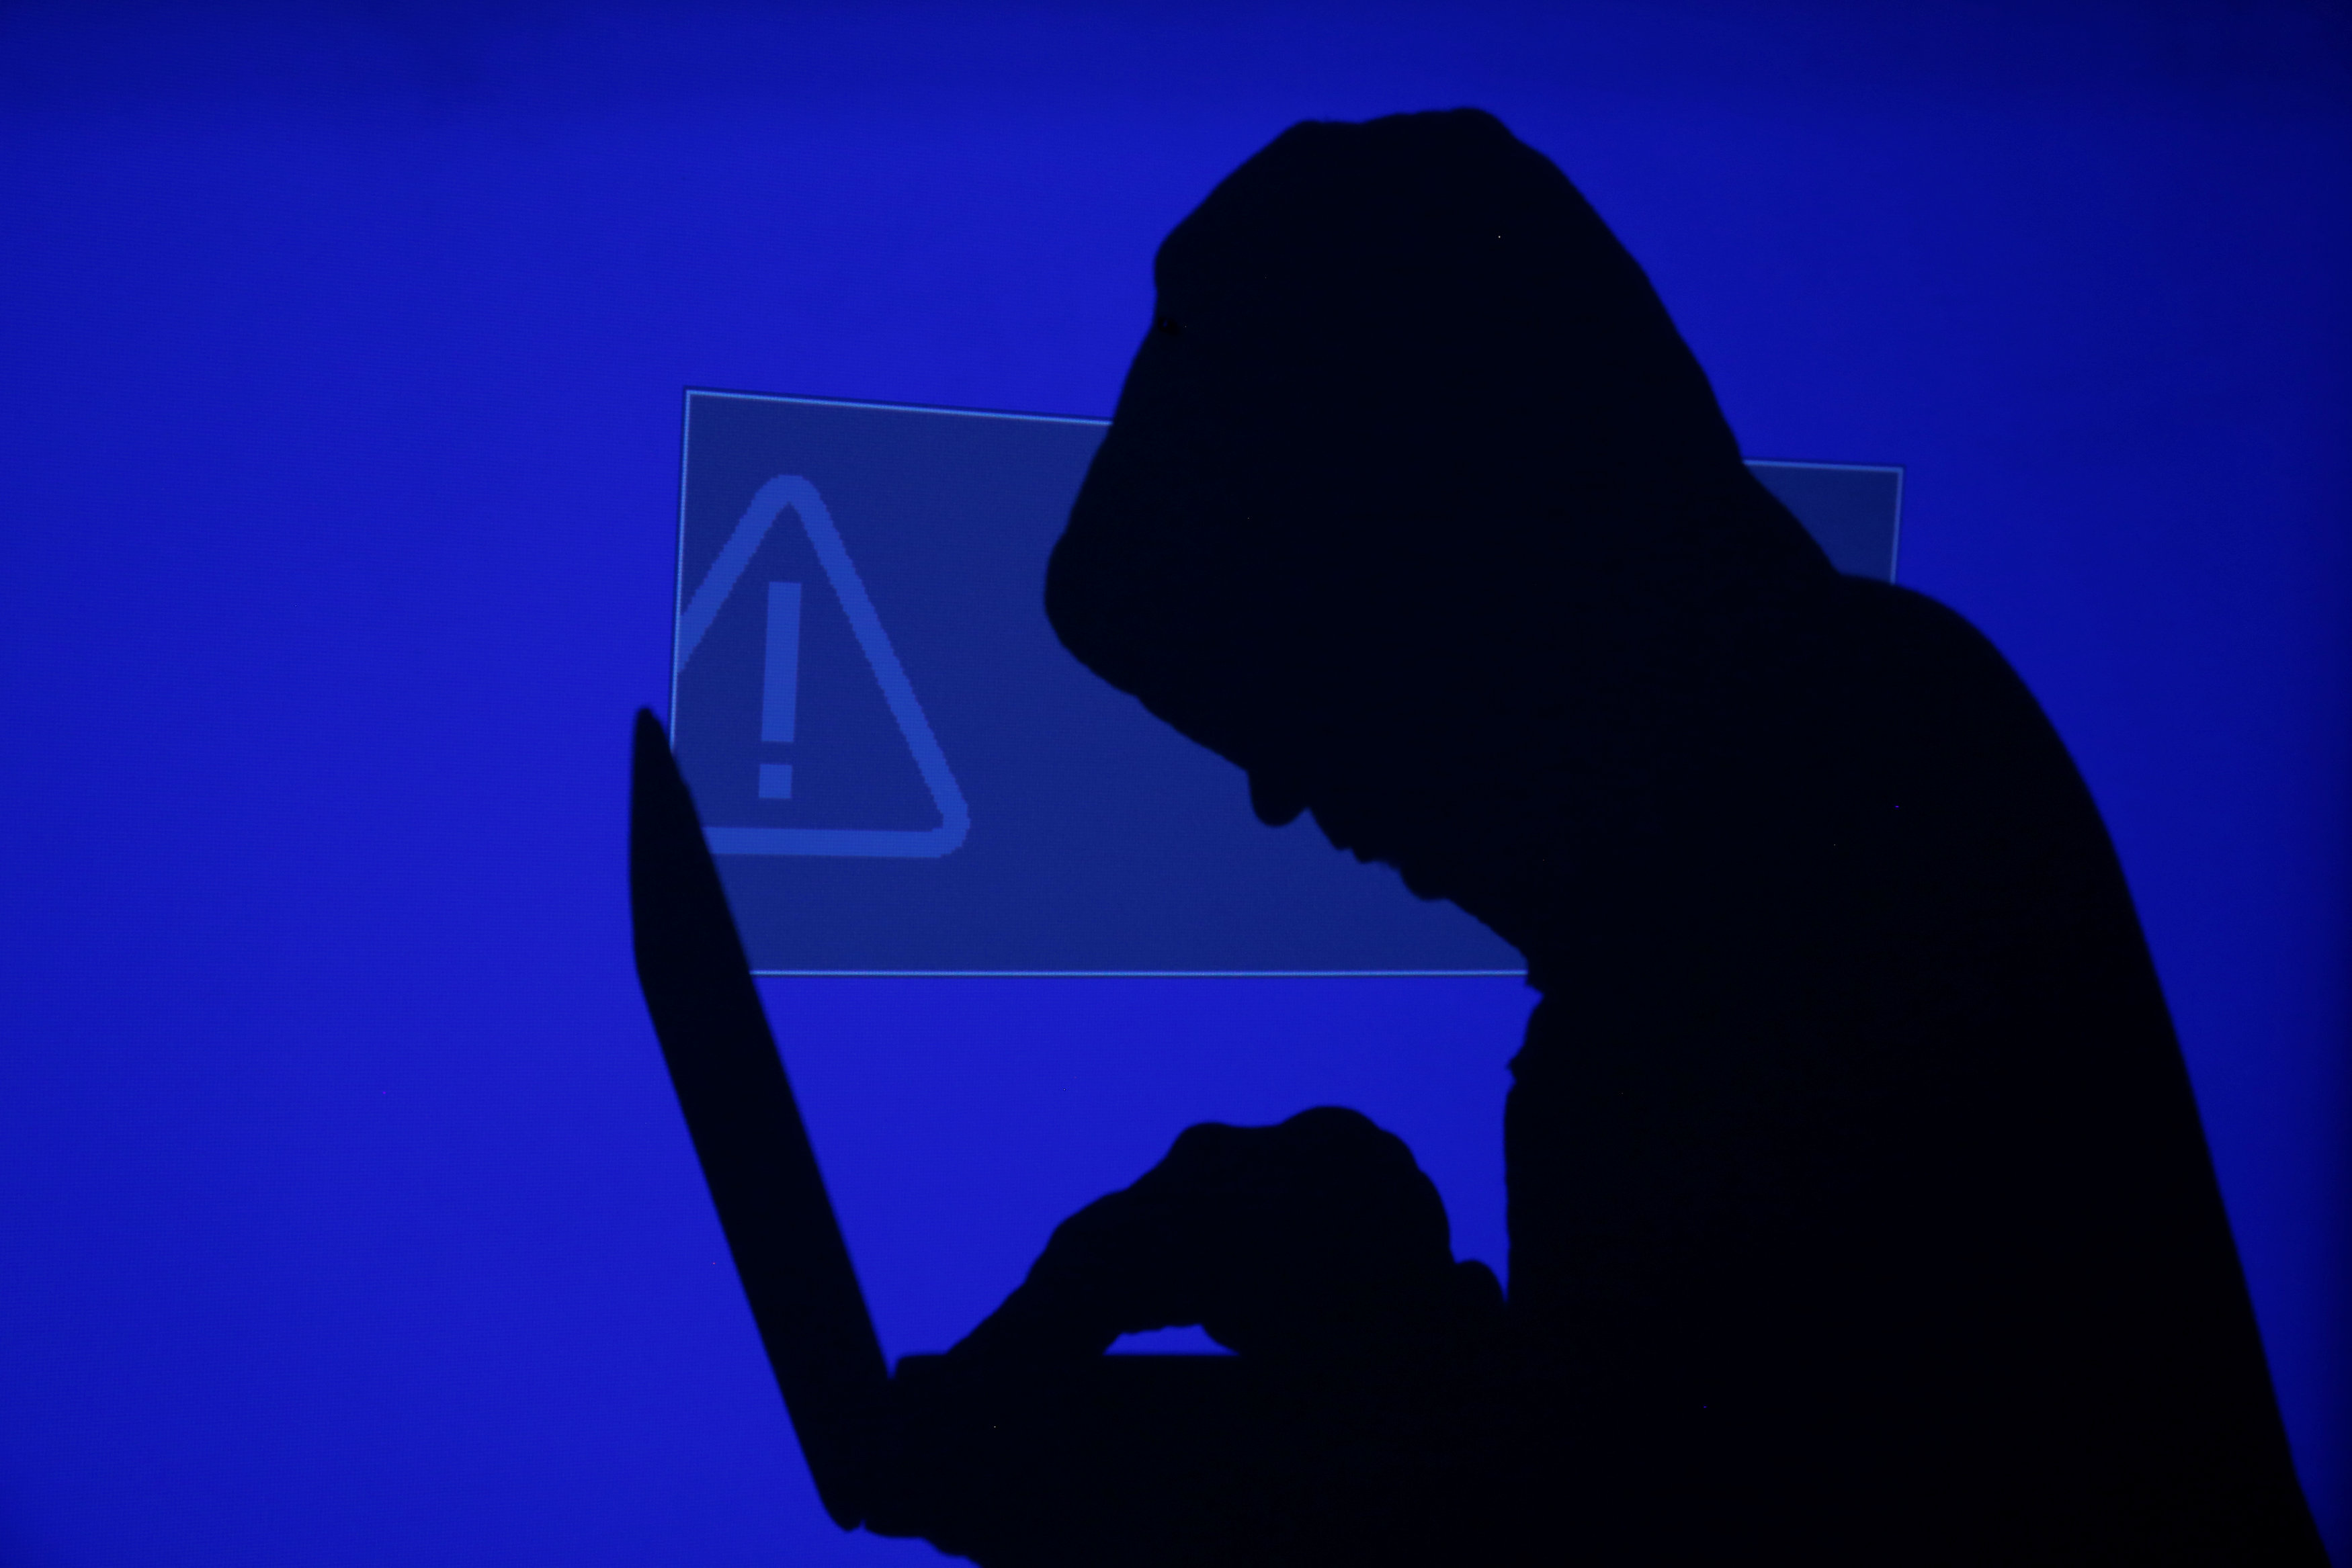 FILE PHOTO: A hooded man holds a laptop computer as blue screen with an exclamation mark is projected on him in this illustration picture taken on May 13, 2017. REUTERS/Kacper Pempel/Illustration